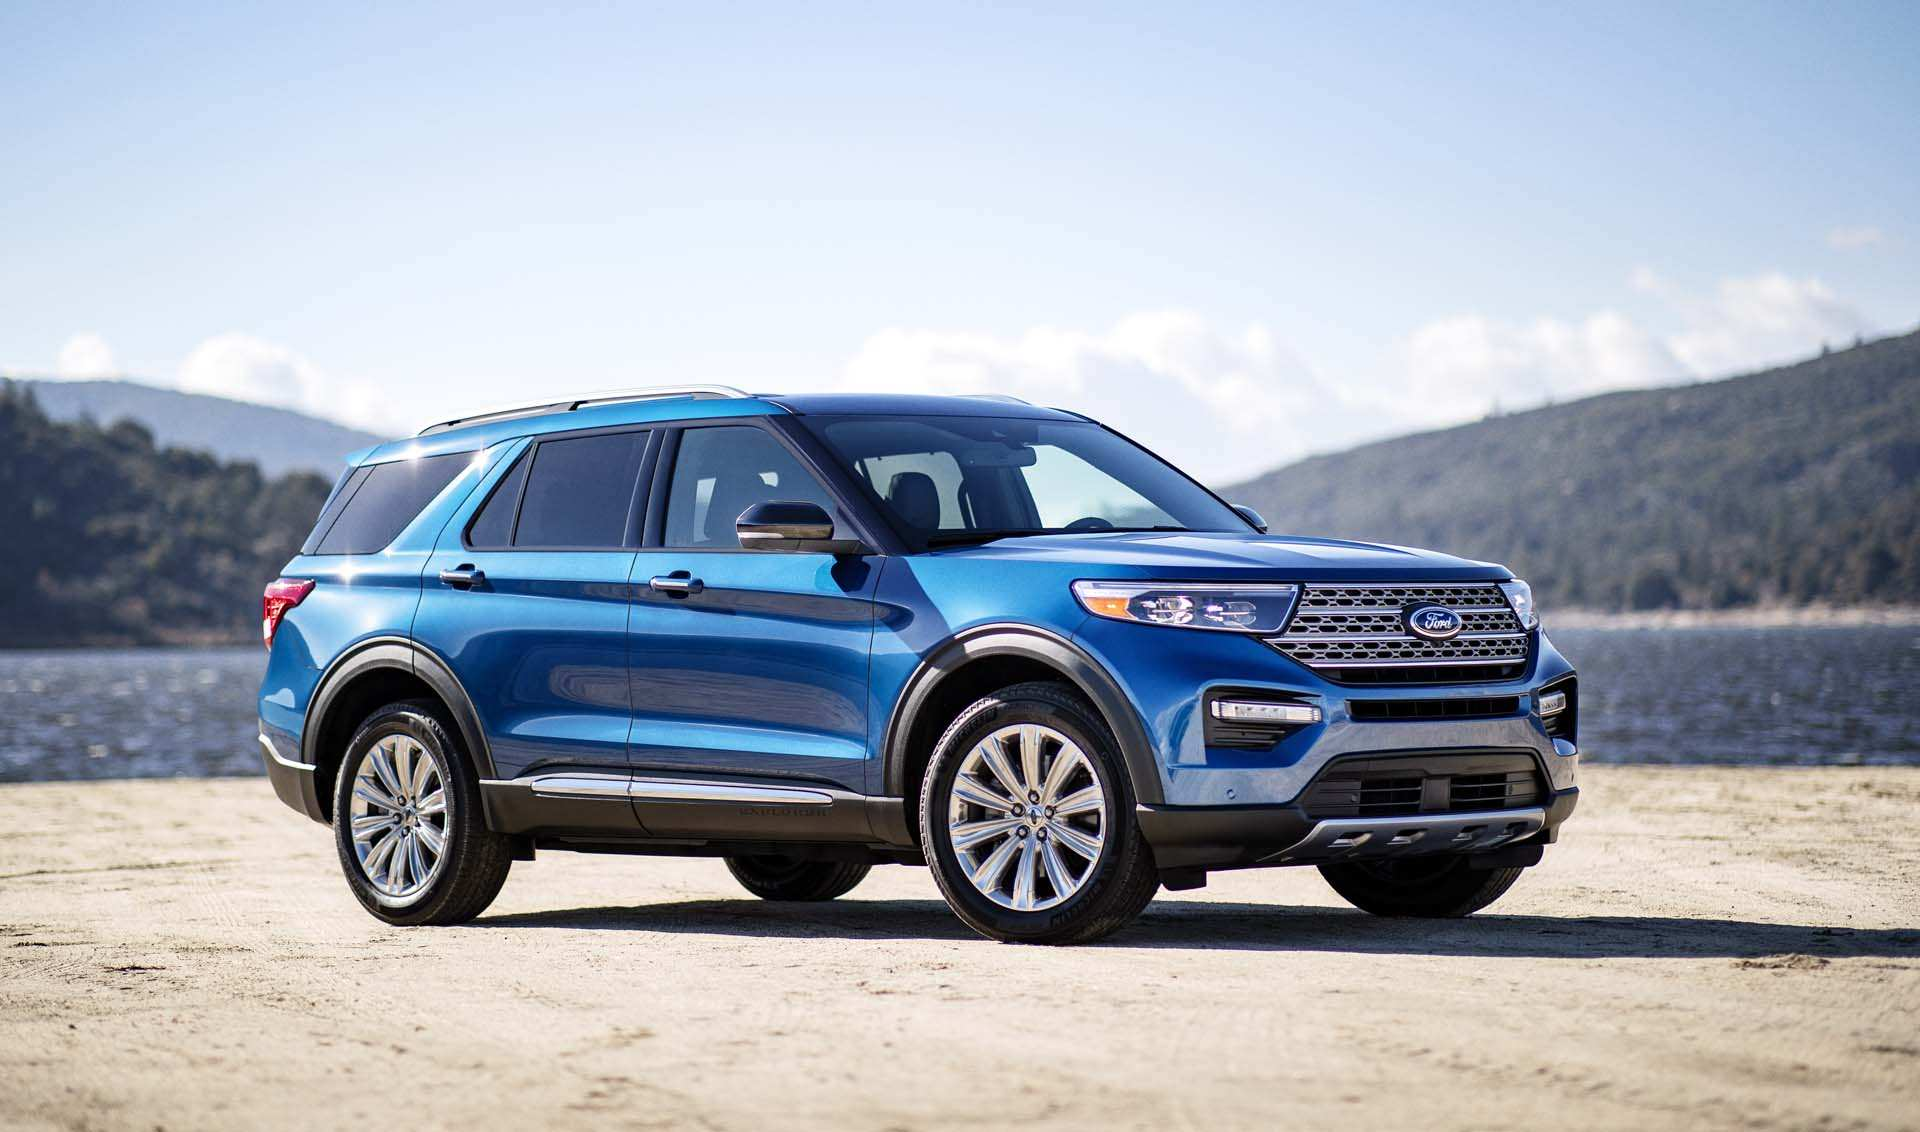 25 Gallery of When Can You Buy A 2020 Ford Explorer New Review for When Can You Buy A 2020 Ford Explorer